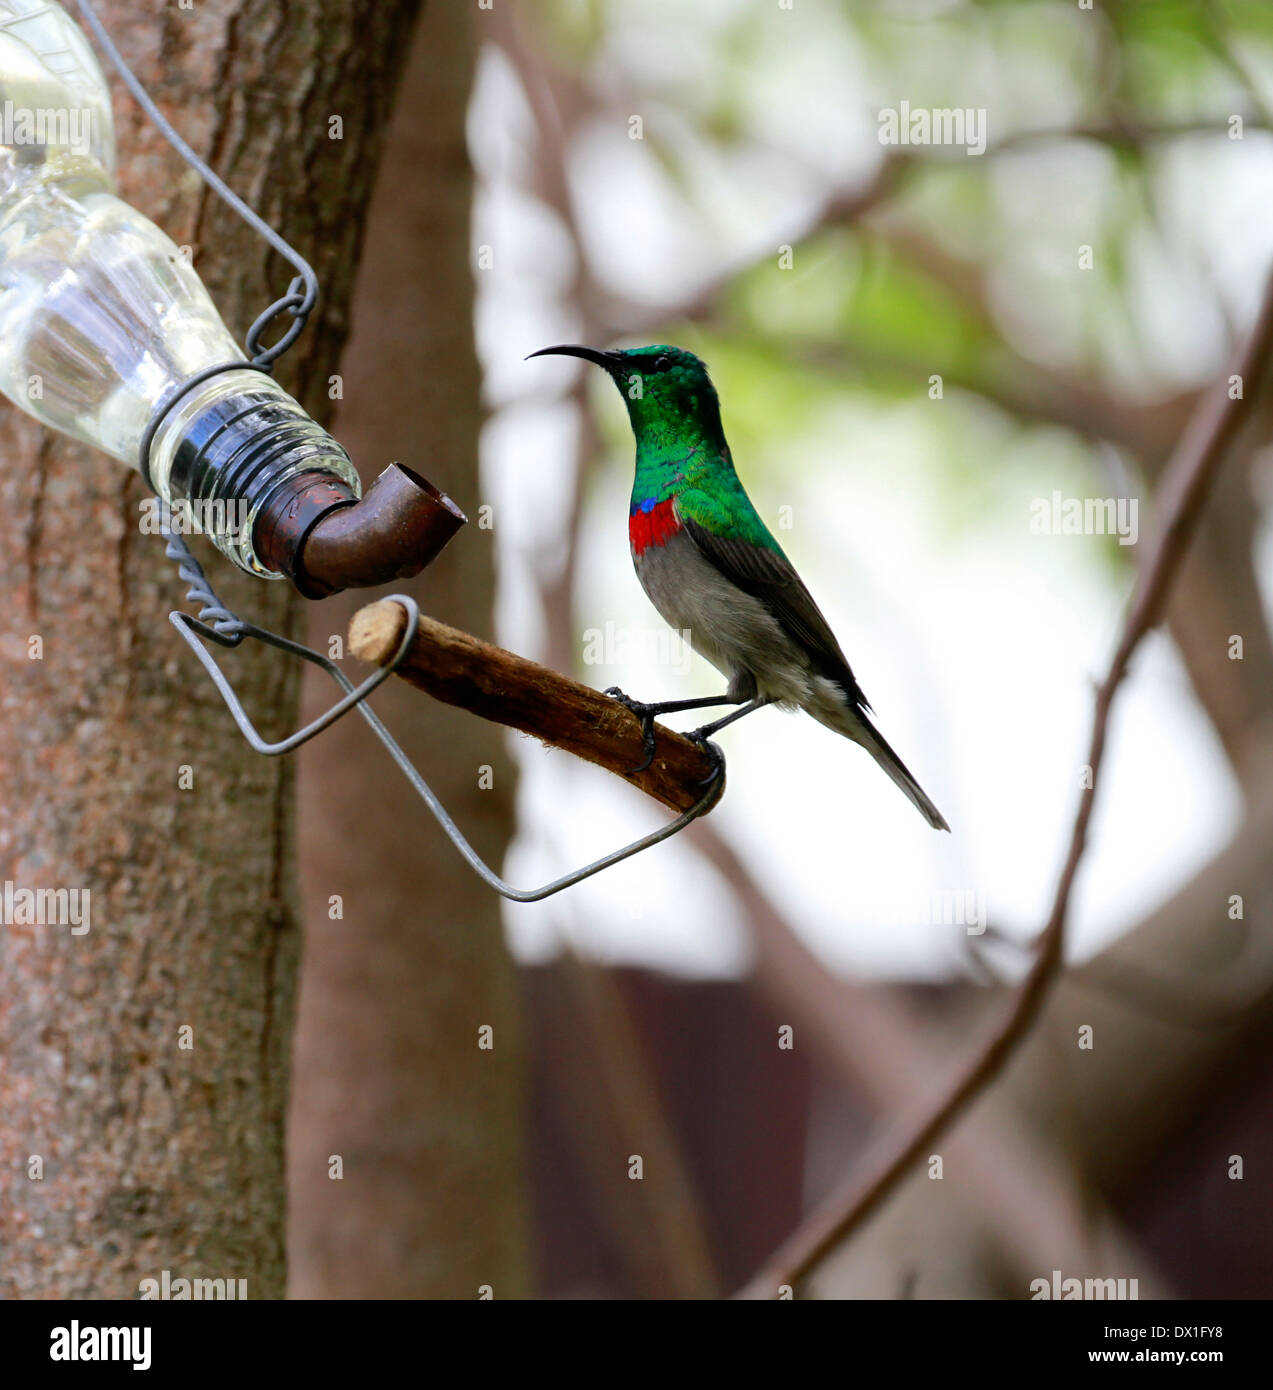 Lesser Double-collared Sunbird or Southern Double-collared Sunbird (Cinnyris chalybeus) perched on nectar feeder in garden. - Stock Image